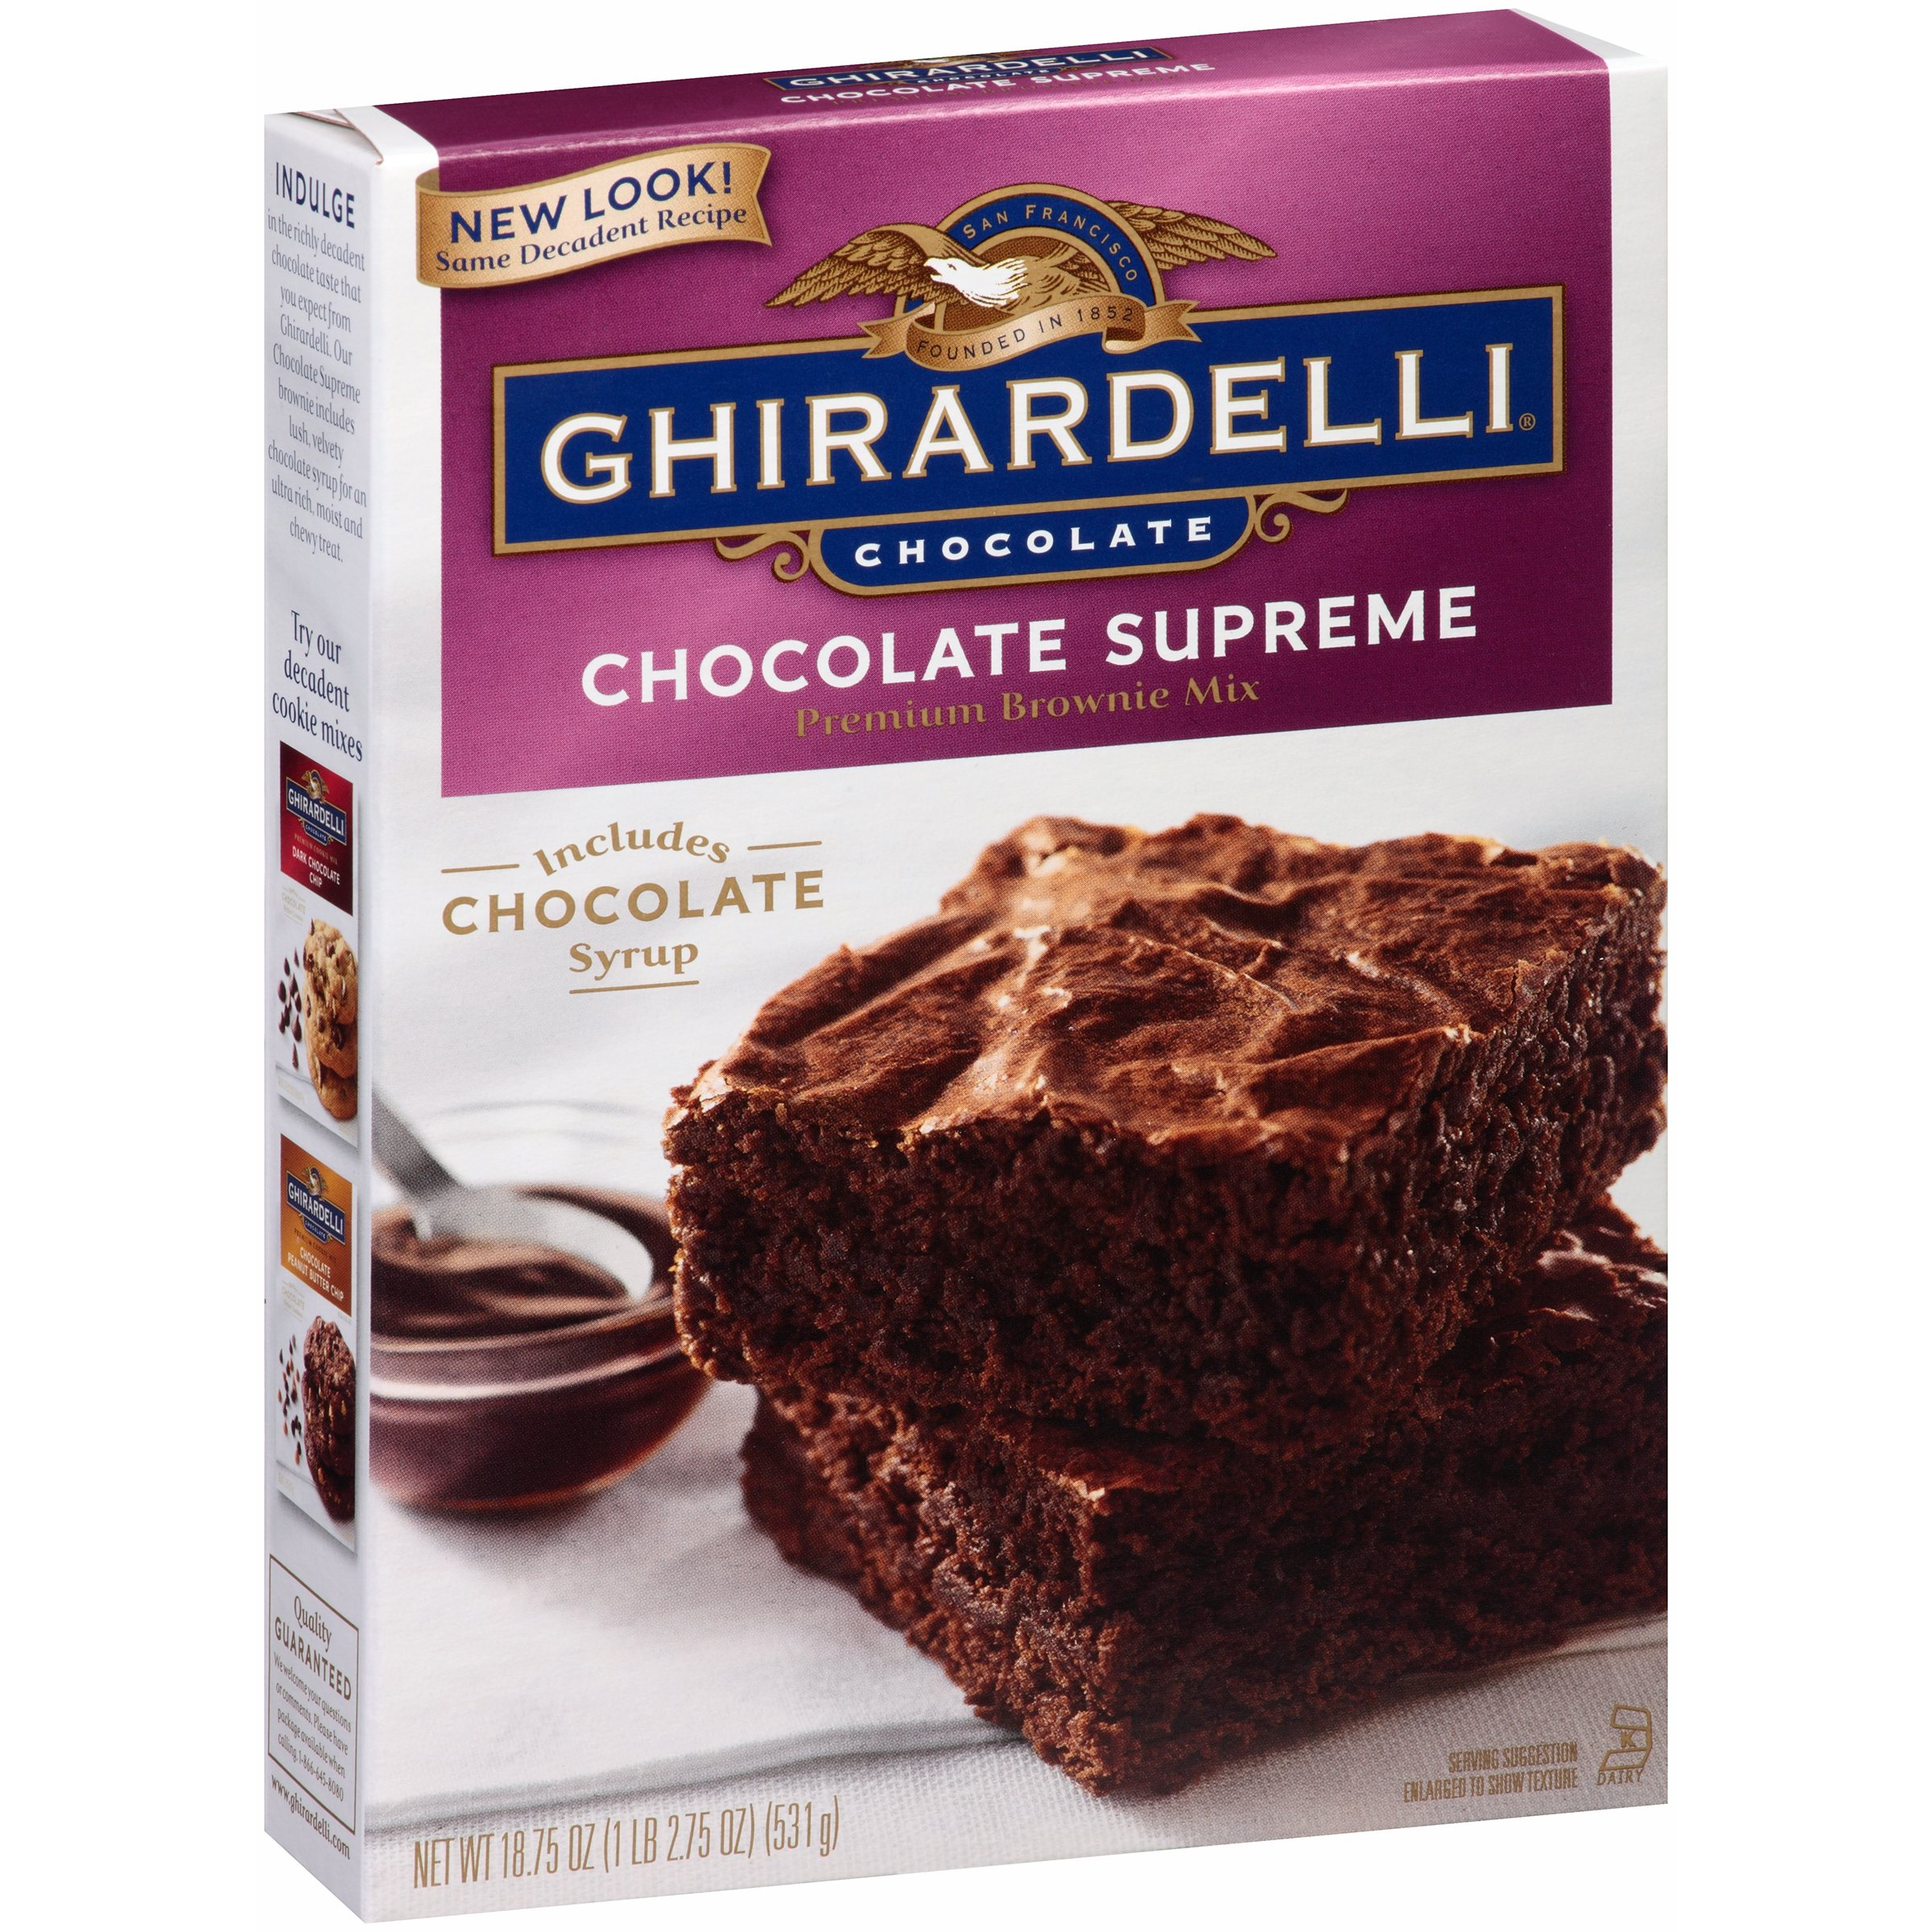 Ghirardelli® Chocolate Supreme Premium Brownie Mix 18.75 oz. Box